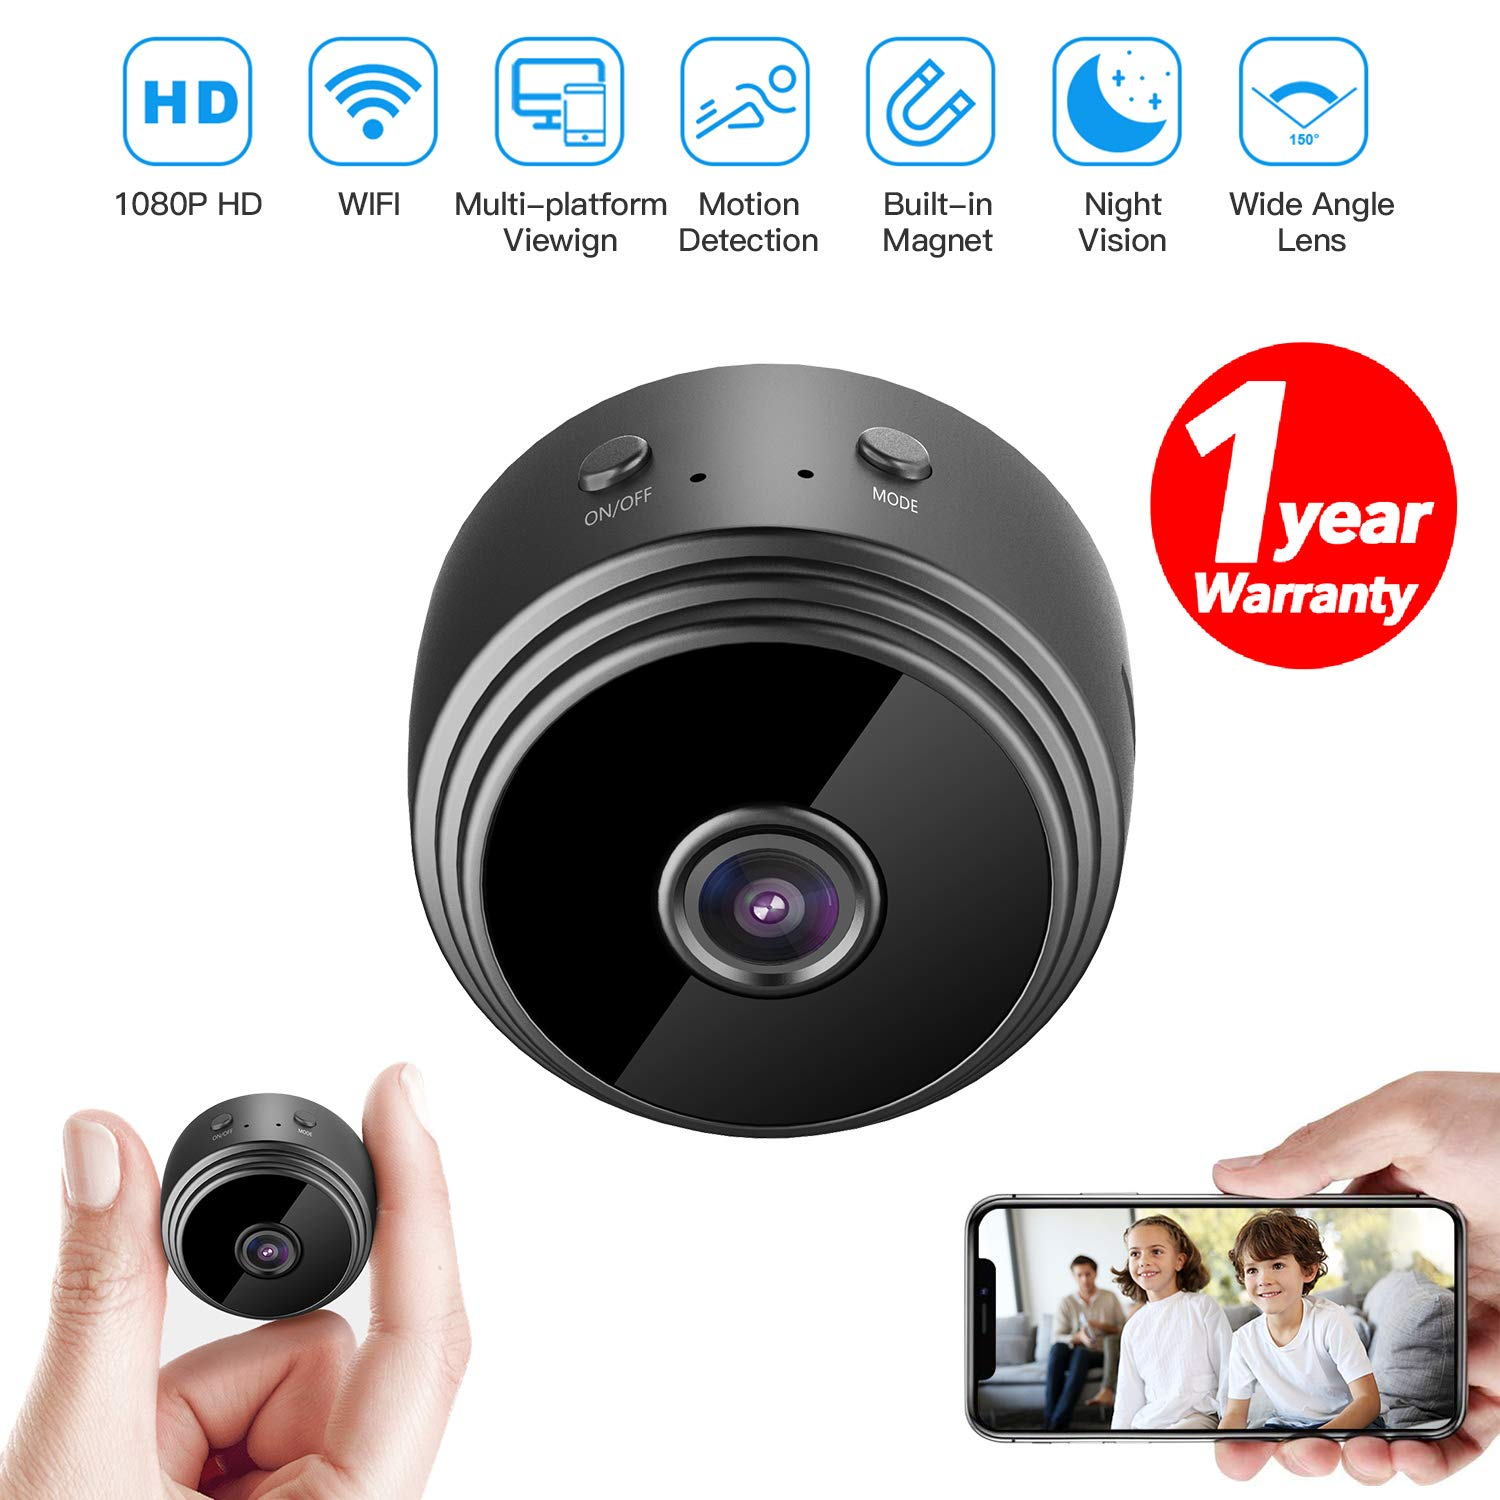 32GB Mini HD 1080P Wireless Hidden Camera,Home WiFi Remote Security Cameras,Smart Motion Detection,Instant Push Notifications, Remote Playback,Magnetic Feature,Night Vision Spy Camera,by HZTCAM by HZTCAM